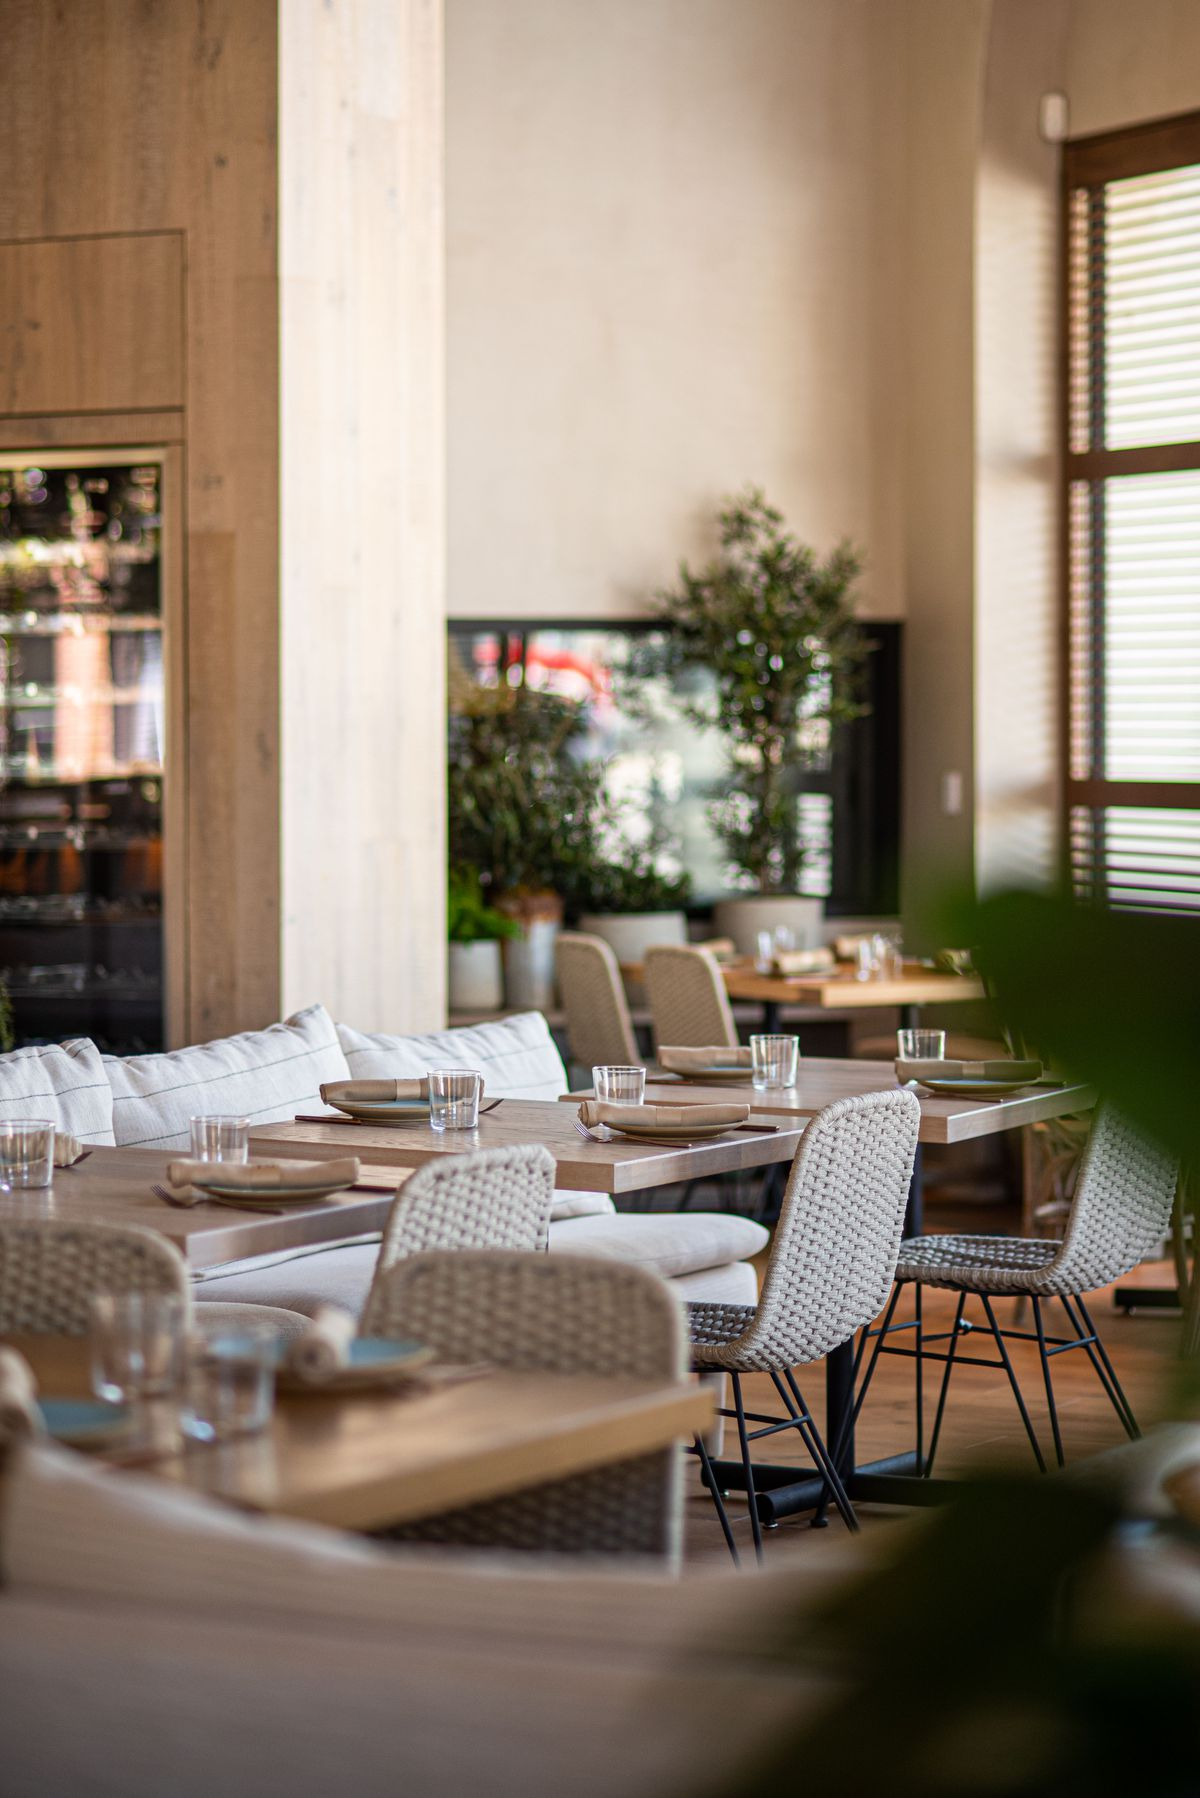 Off-white tables and chairs and leaves inside a new restaurant.